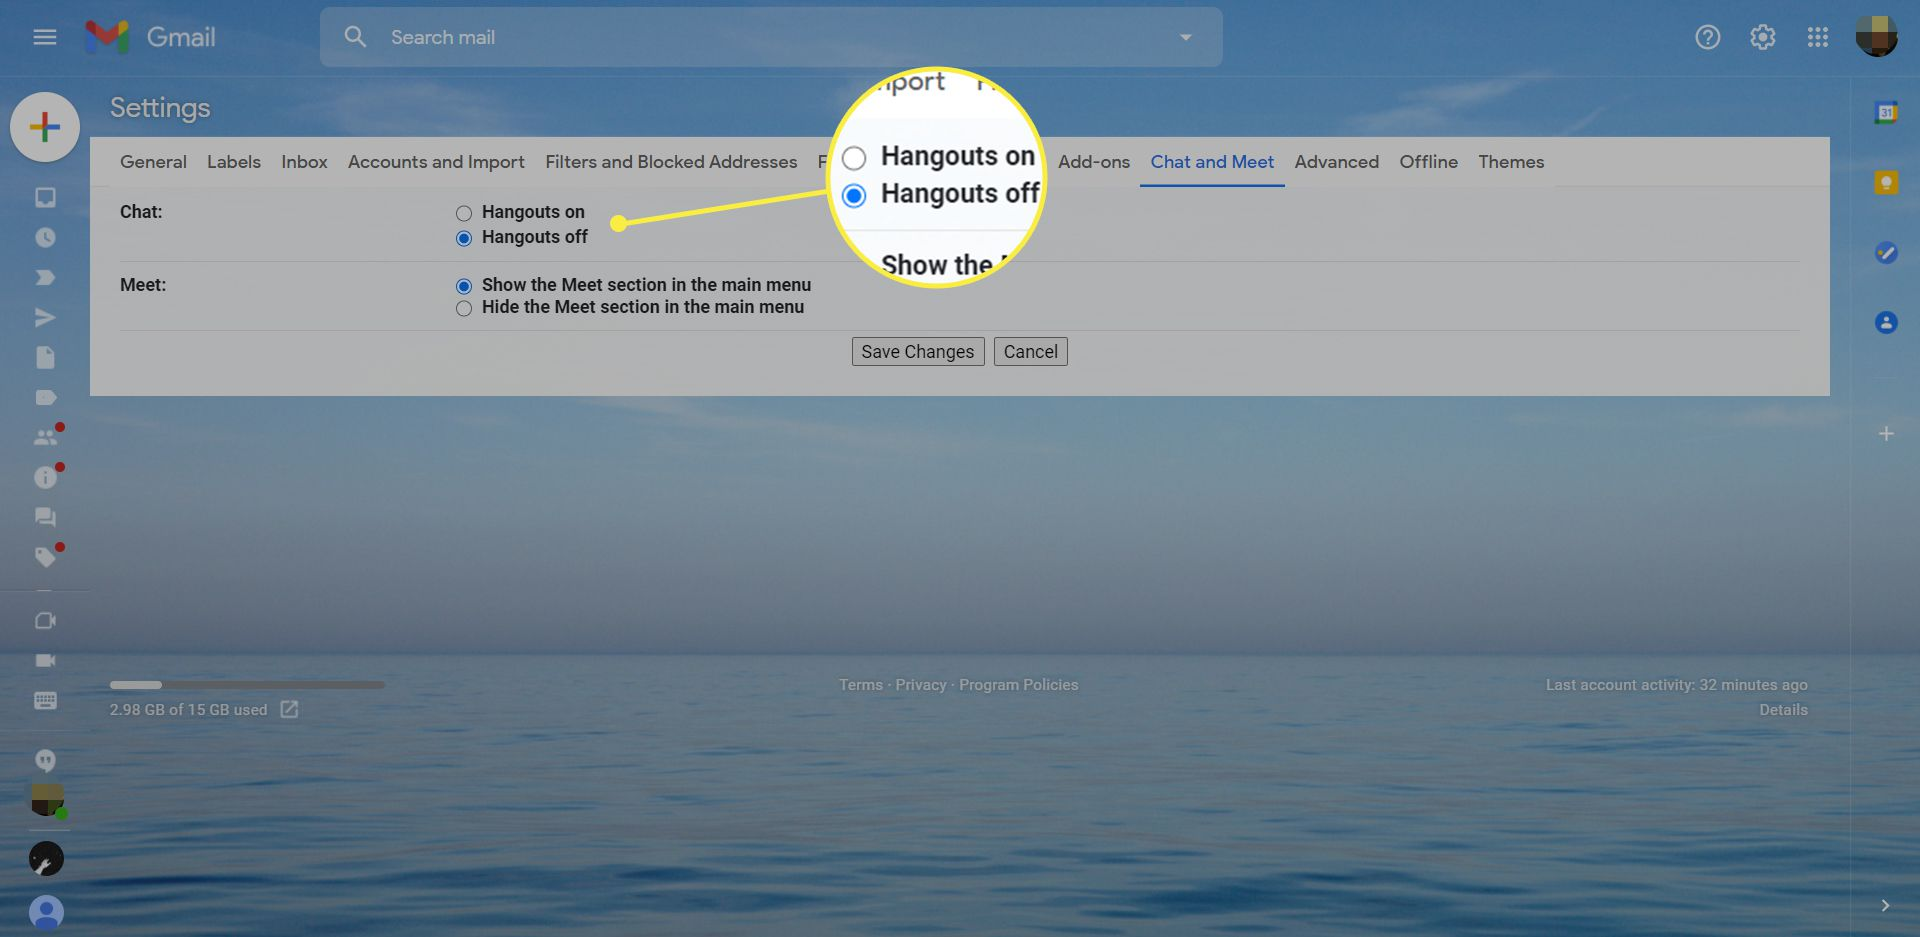 Gmail settings with the Hangouts off button highlighted